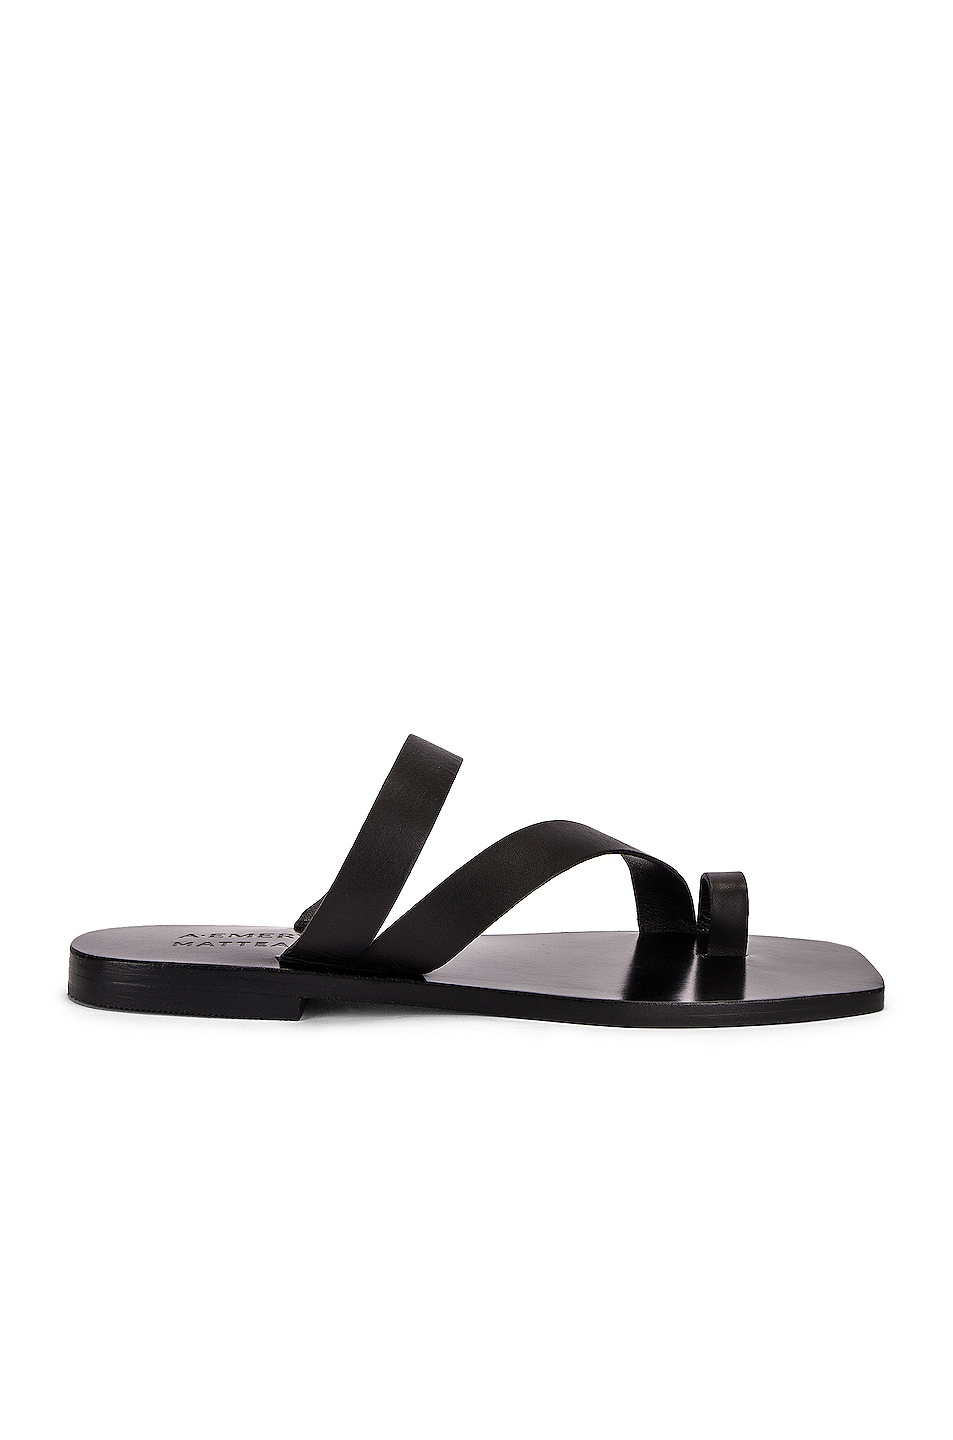 Image 1 of A.EMERY x Matteau Milos Sandal in Black